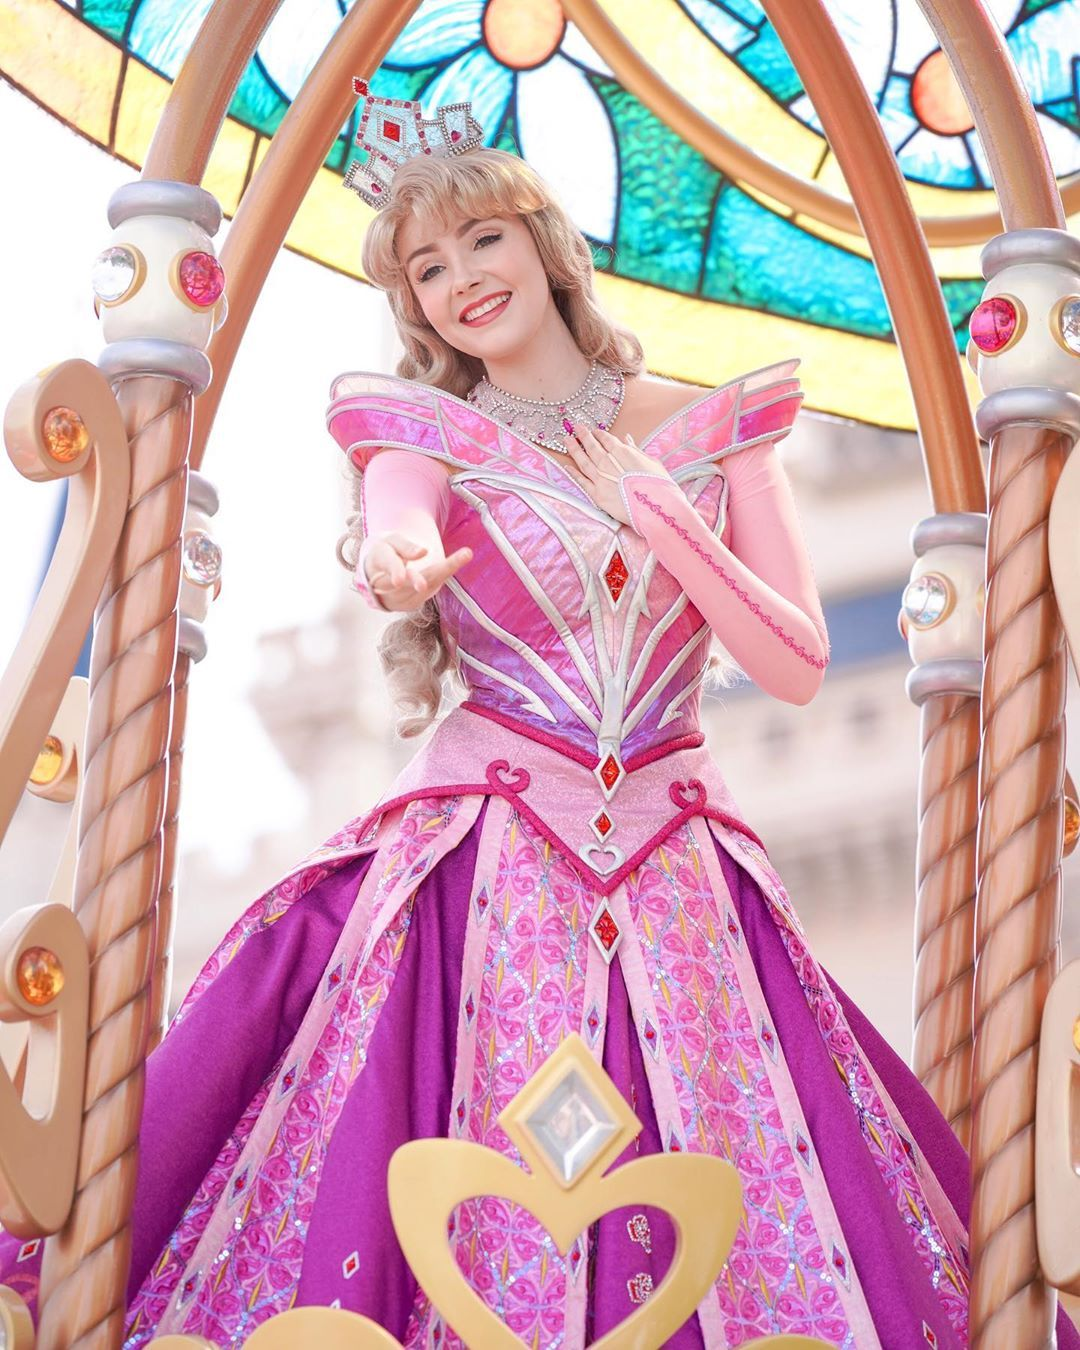 Pin by .1TRH1. on Sleeping Beauty Face Characters | Disney